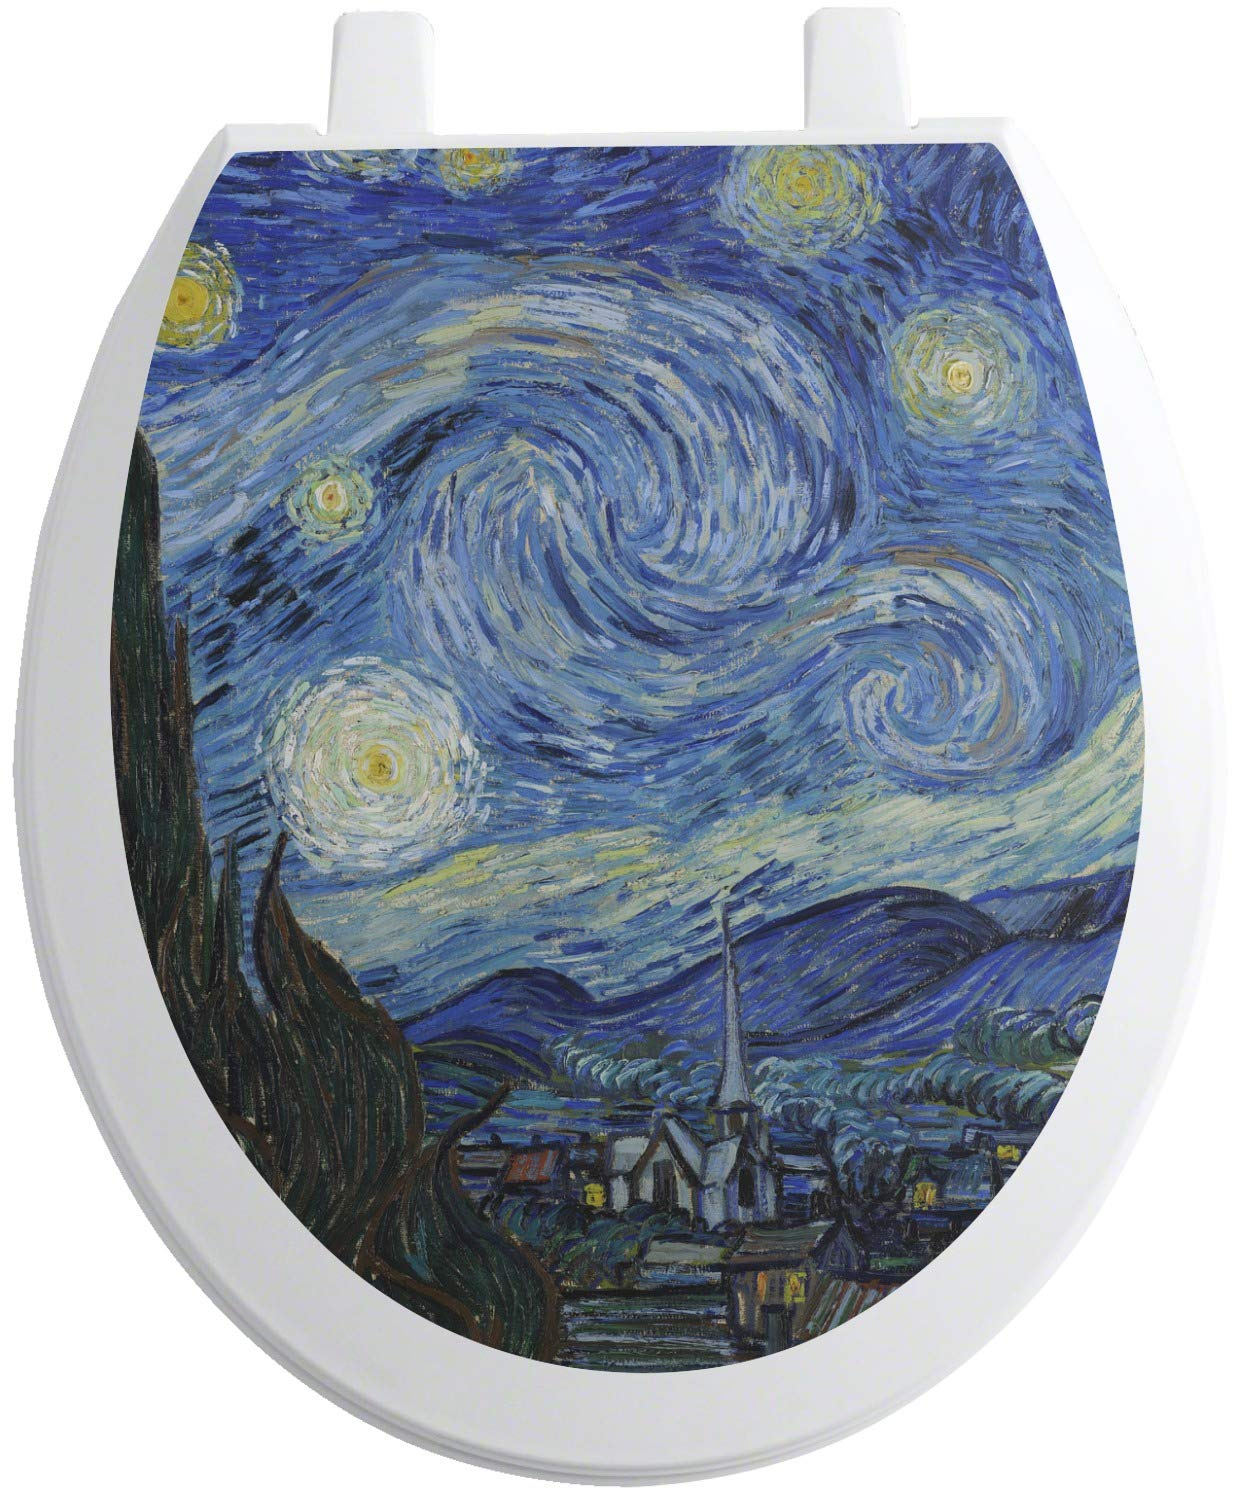 RNK Shops The Starry Night (Van Gogh 1889) Toilet Seat Decal - Round by RNK Shops